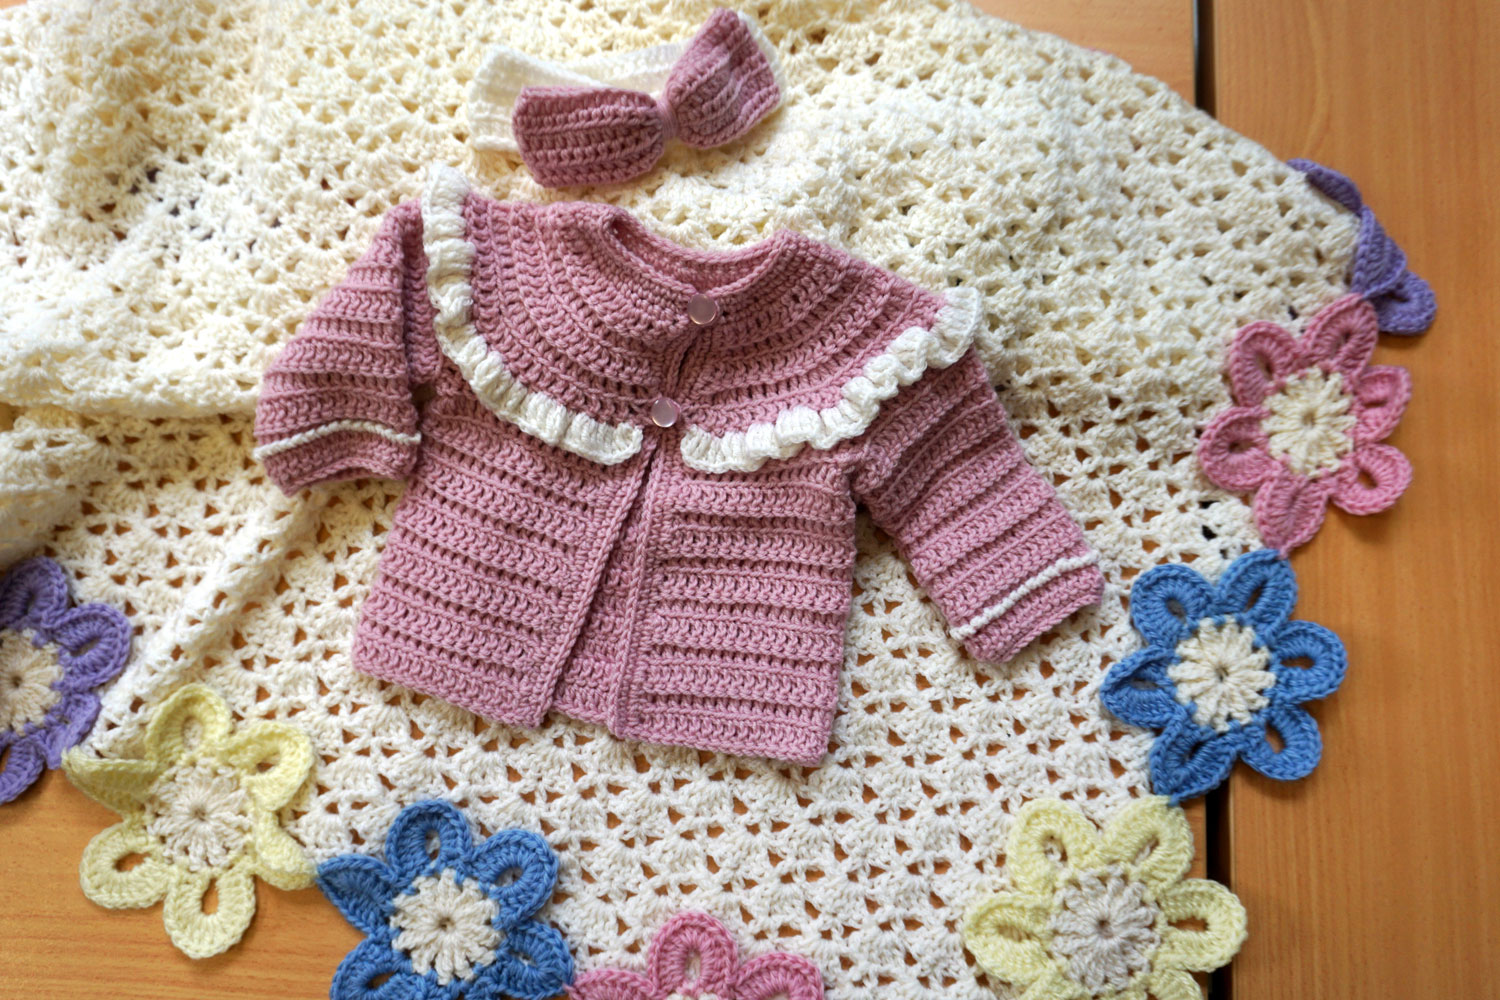 Dusty pink crocheted babies jacket with white trim and matching adorable headband